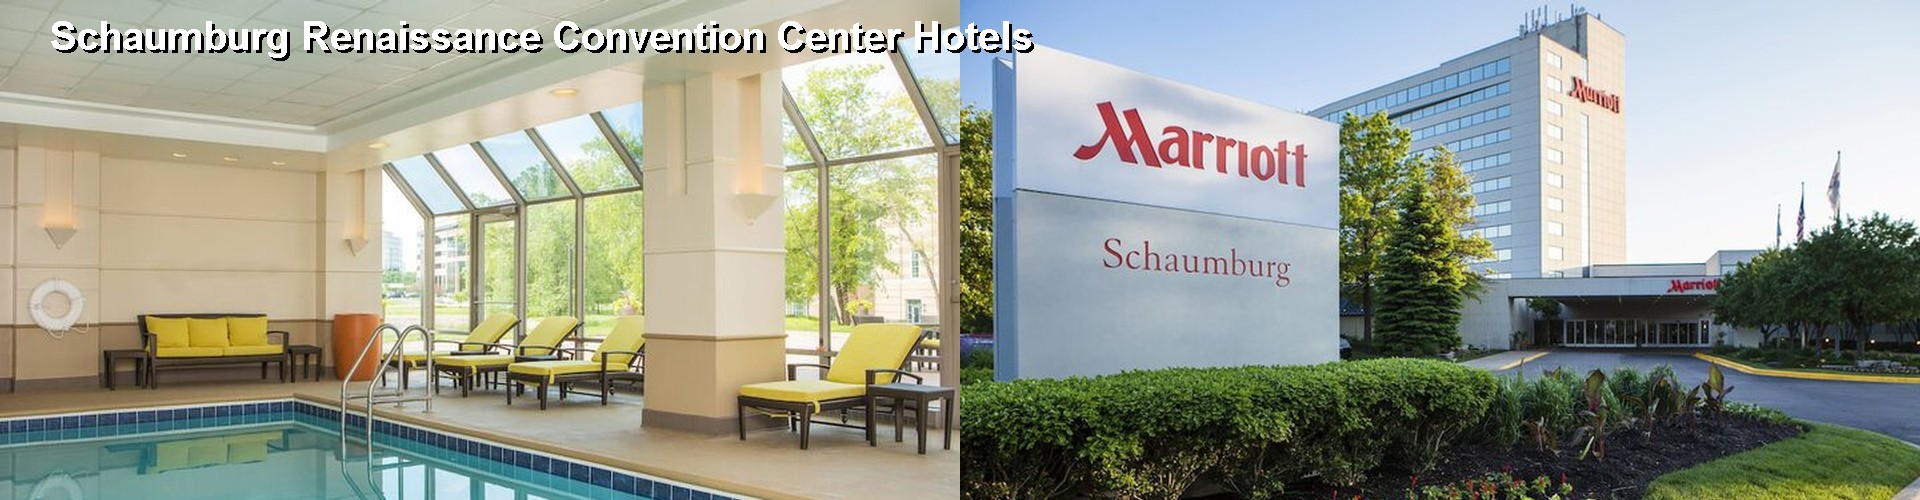 5 Best Hotels near Schaumburg Renaissance Convention Center